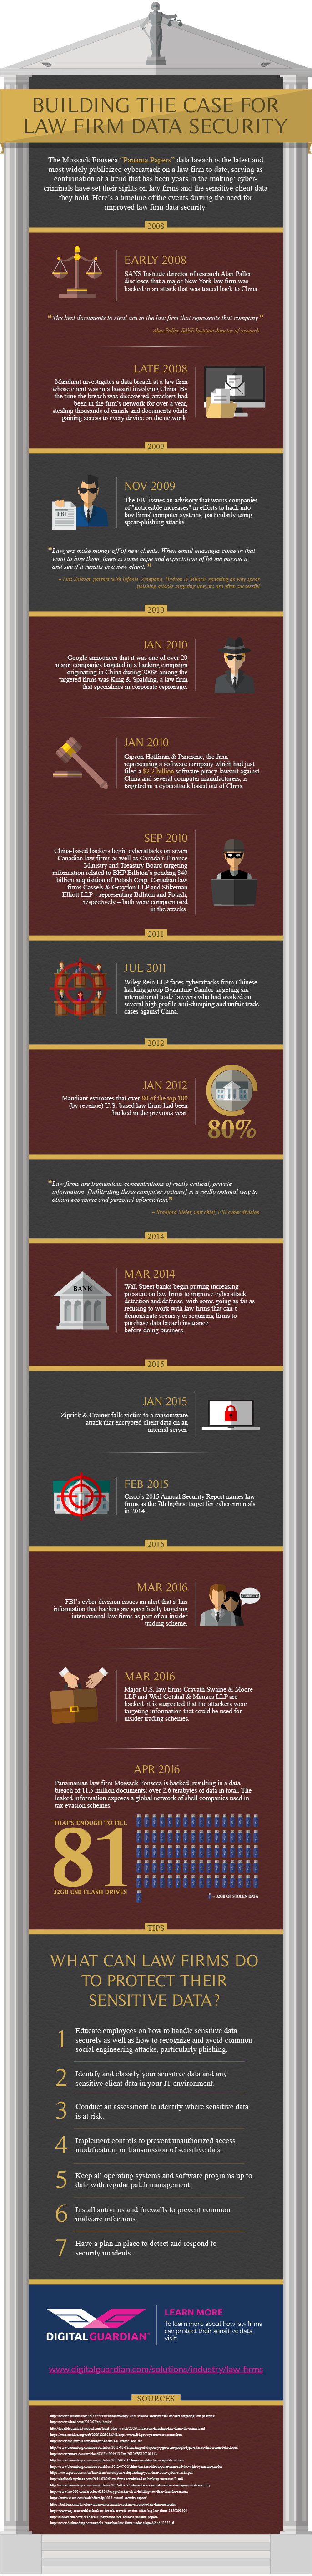 Building the Case for Law Firm Data Security Infographic